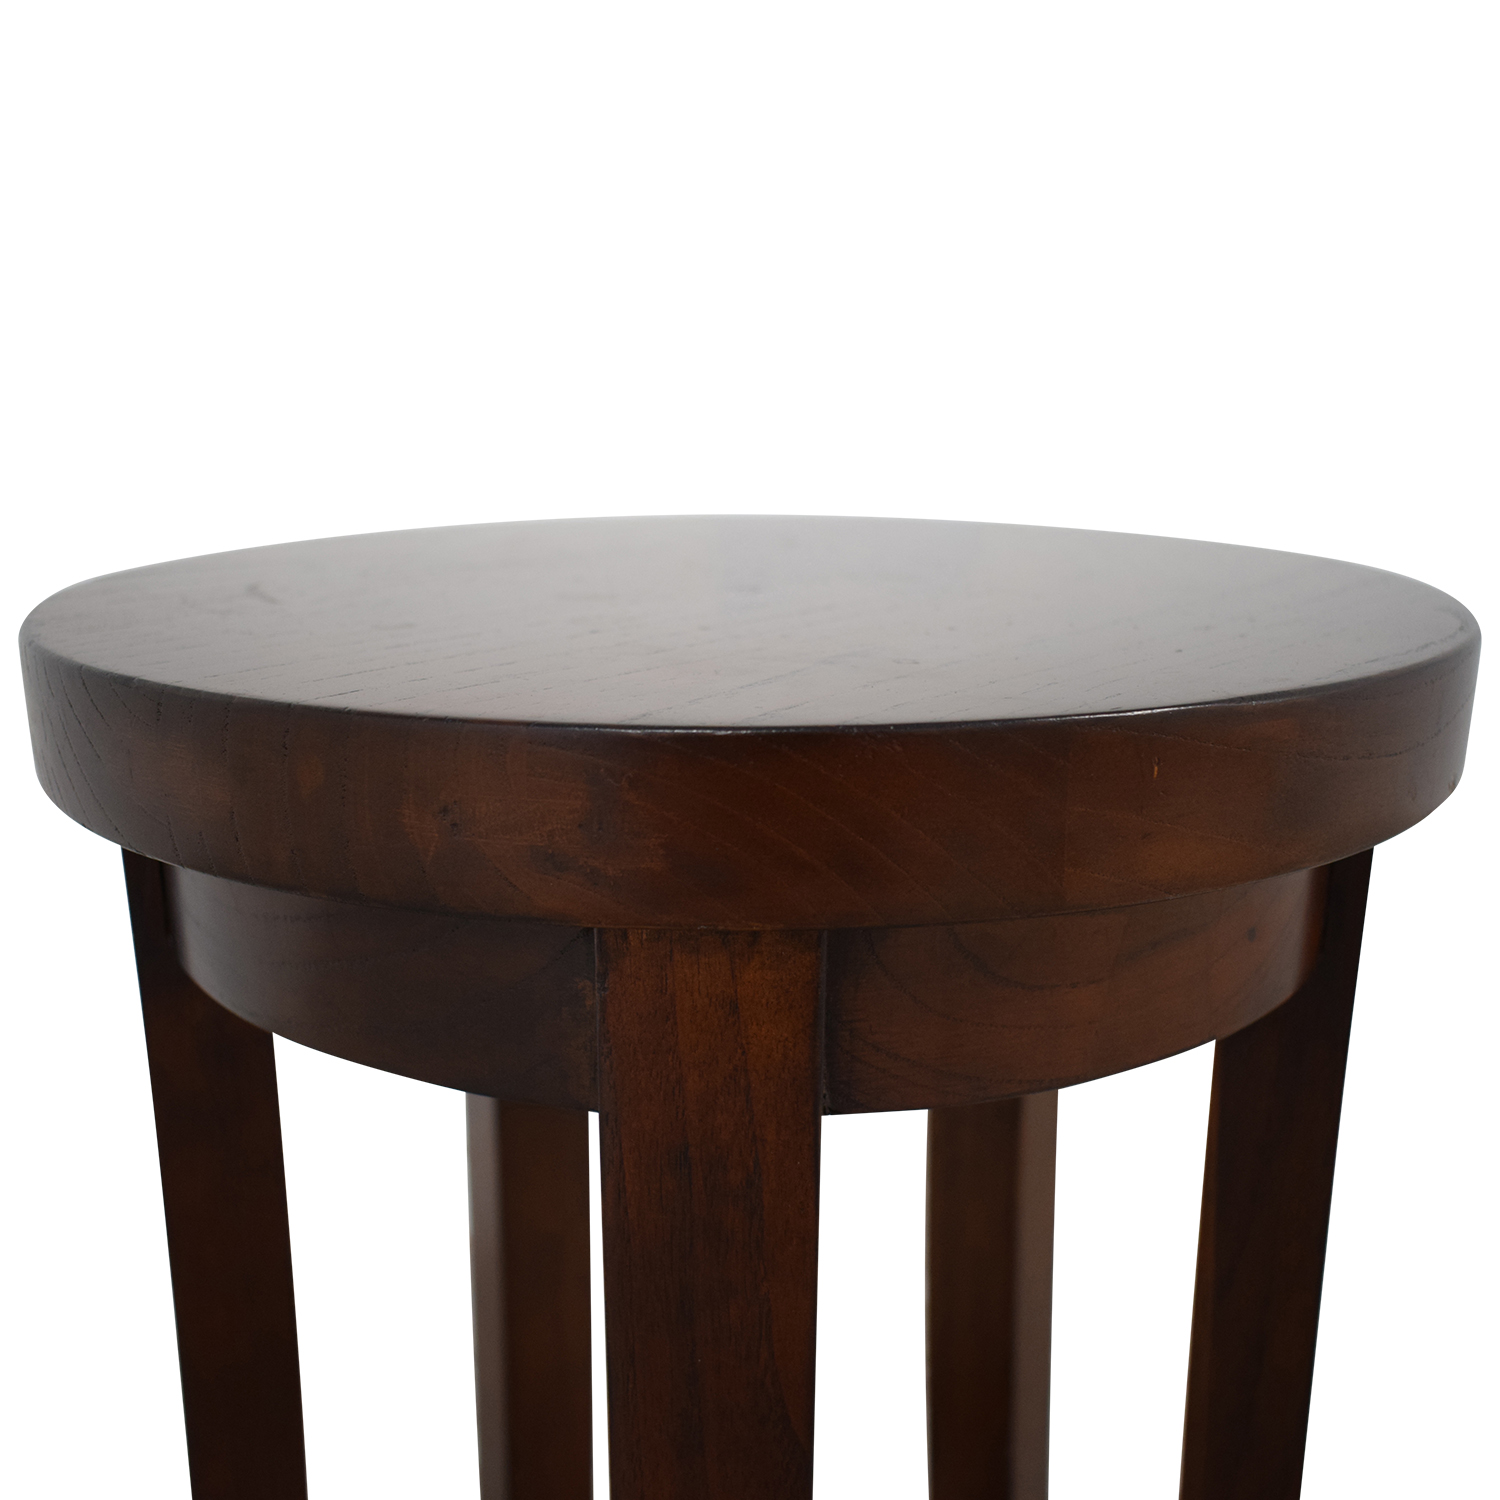 Room & Board Room & Board by Maria Yee Mingshi Round End Table nj